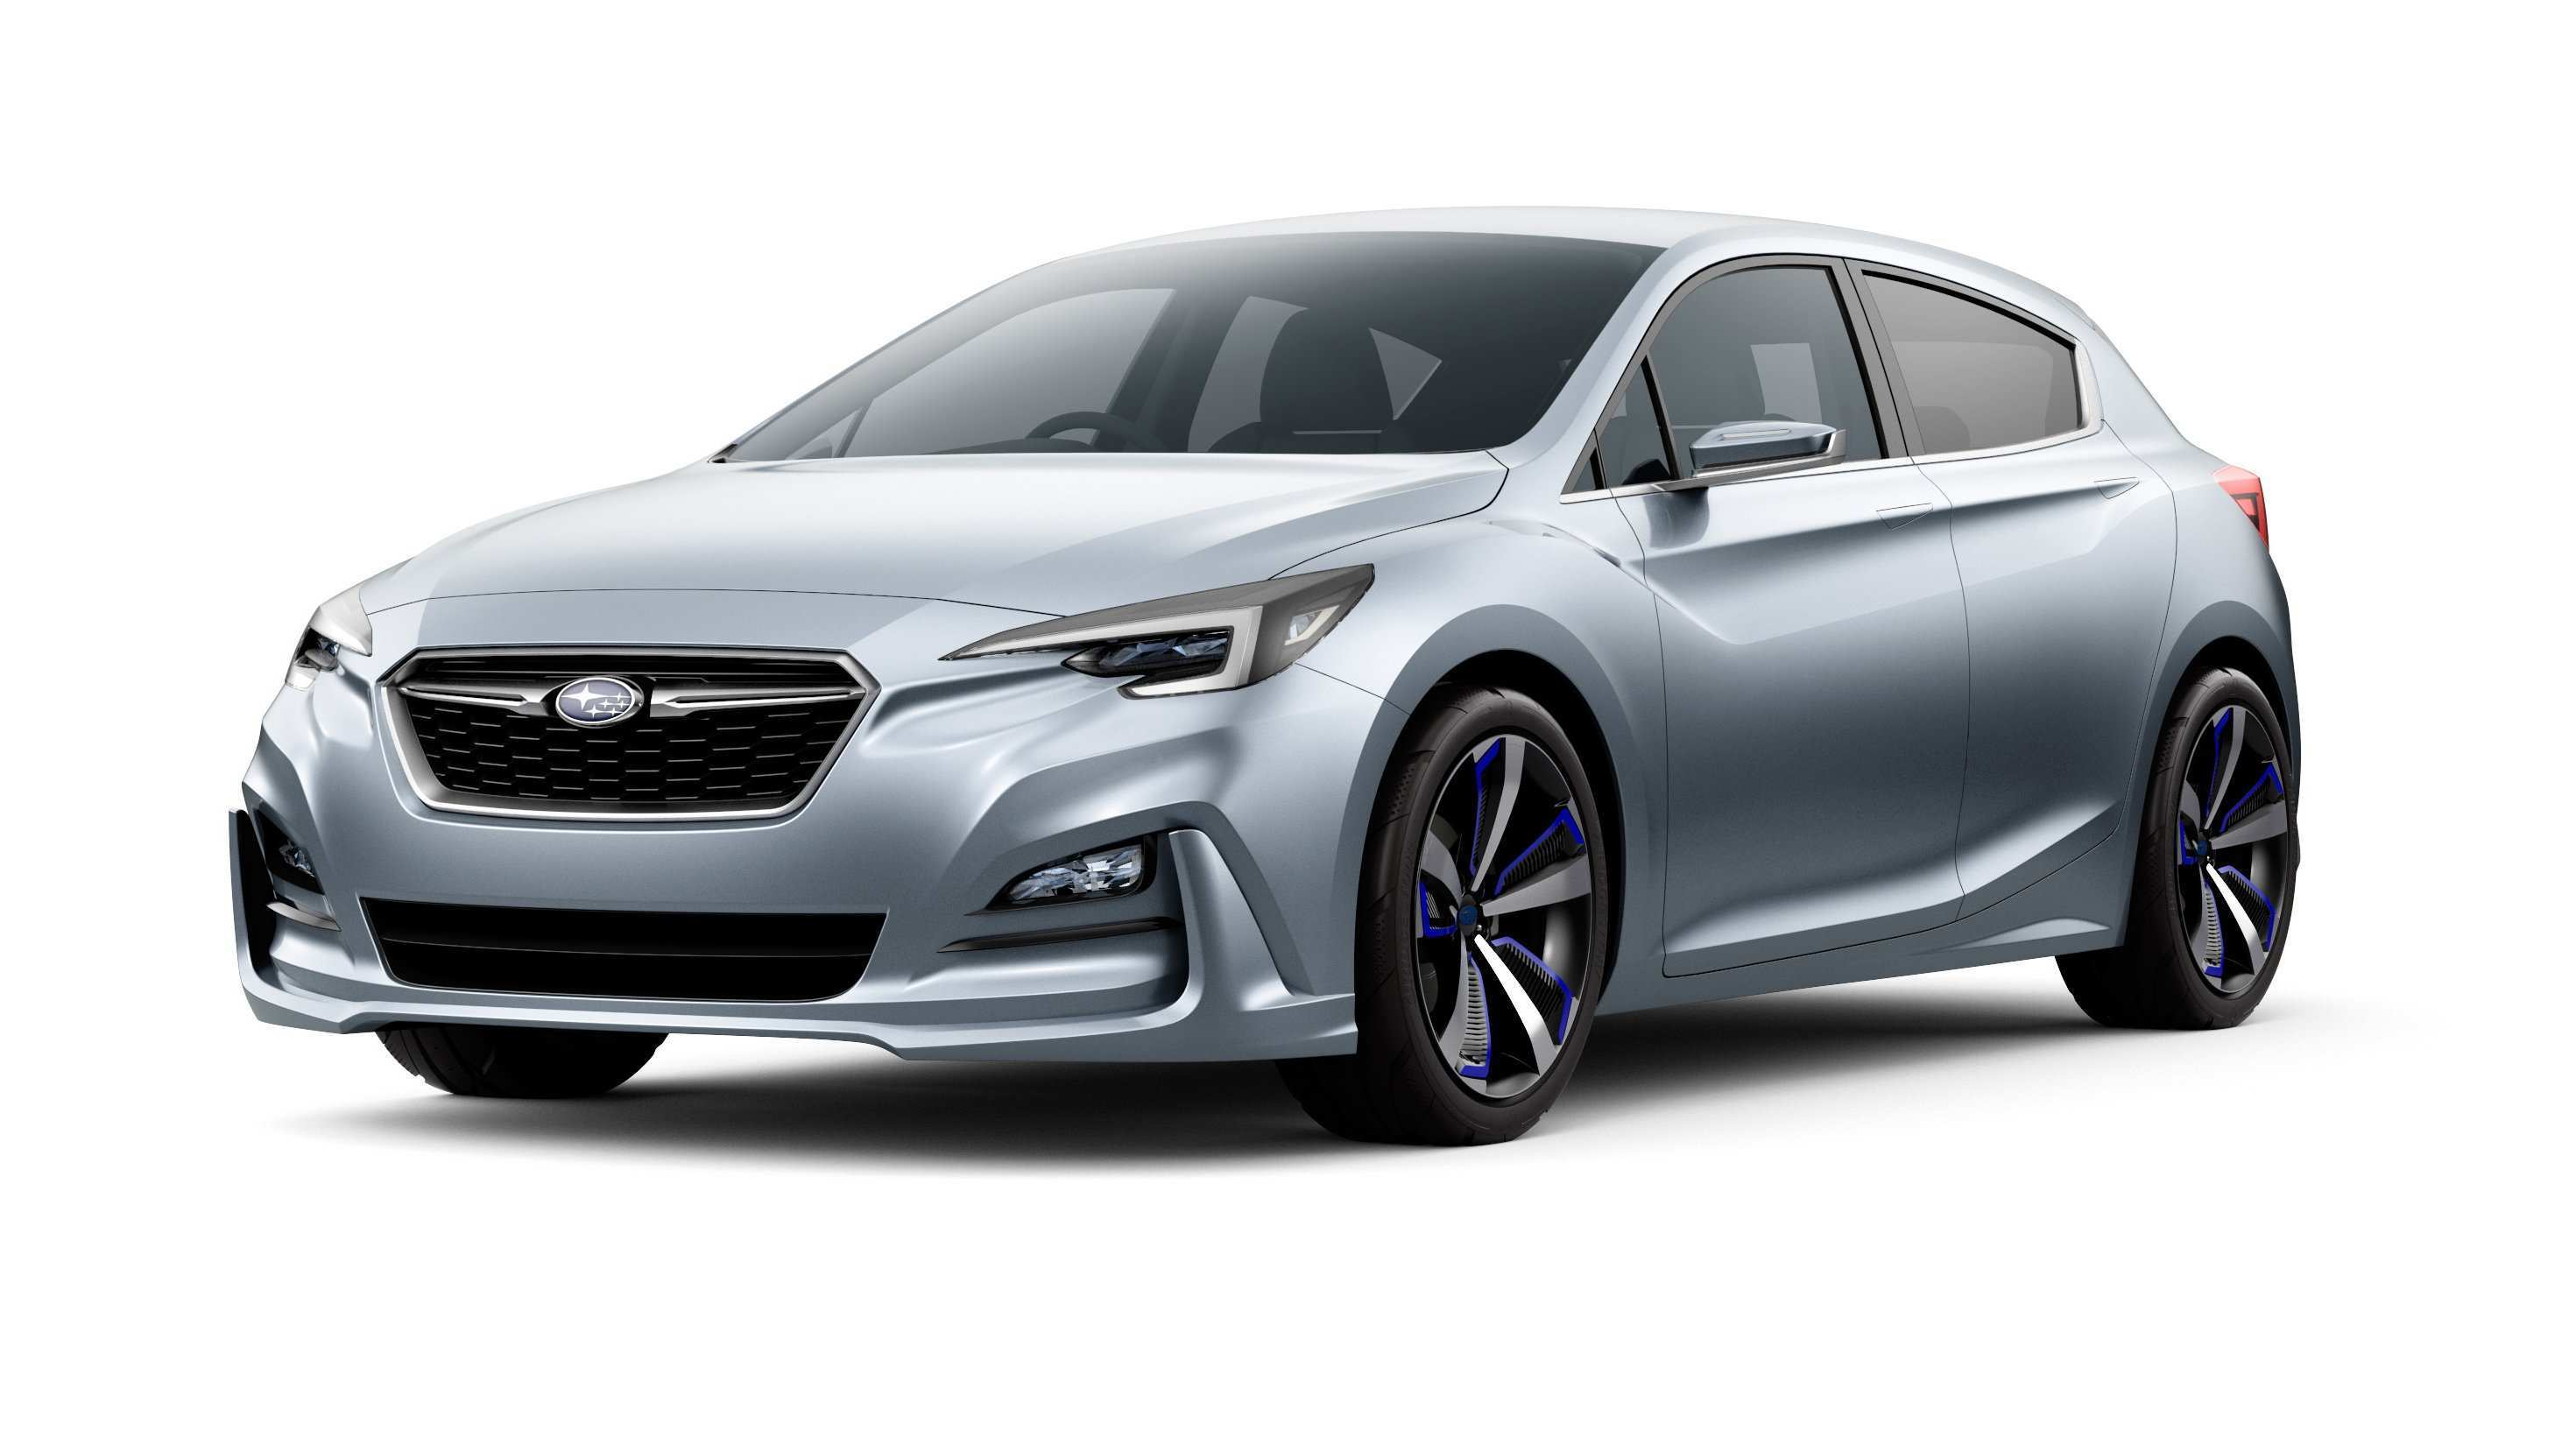 35 The Best Subaru Hatchback 2020 Configurations